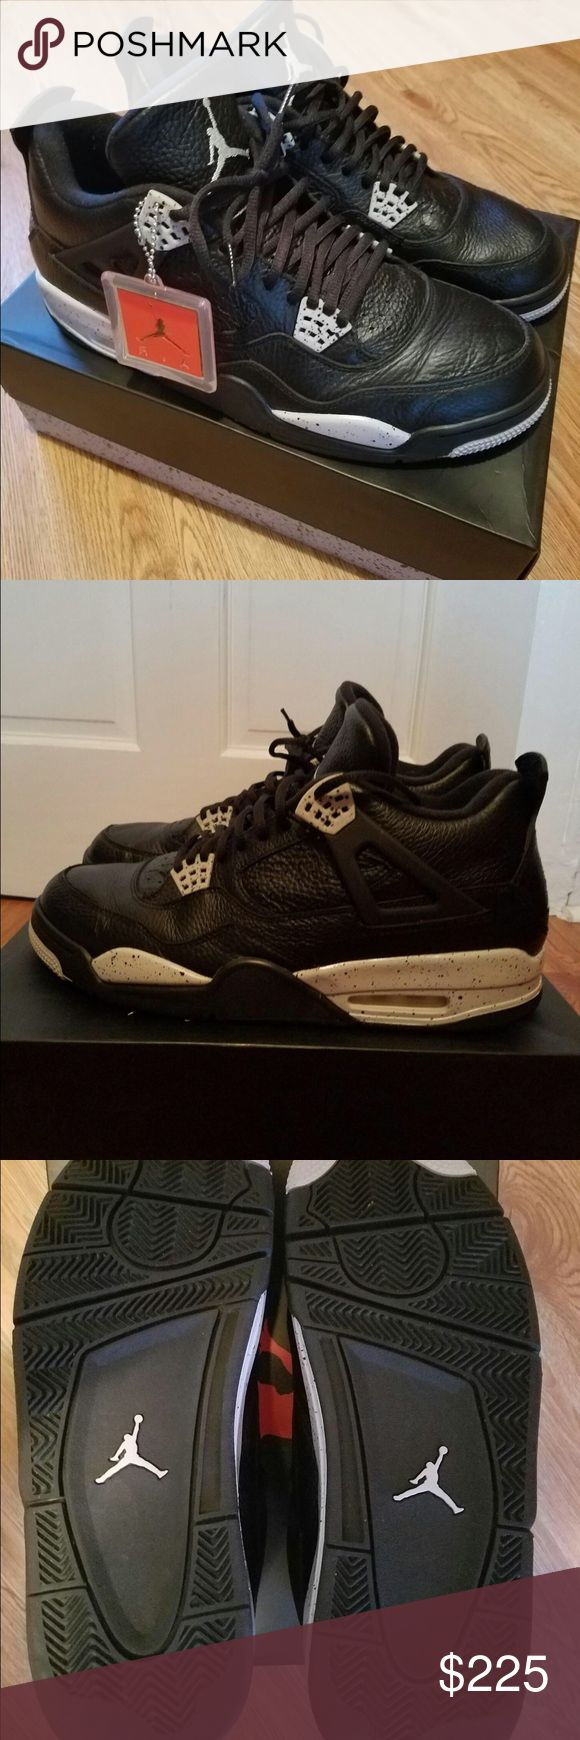 Jordan Retro 4 Oreo   100% Authentic. Worn twice. Jordan Retro 4 Oreo   100% Authentic. Worn twice and box included. Awesome to add to your collection. No trade on this item, but open to reasonable offers. Thanks for shopping my closet! Jordan Shoes Sneakers